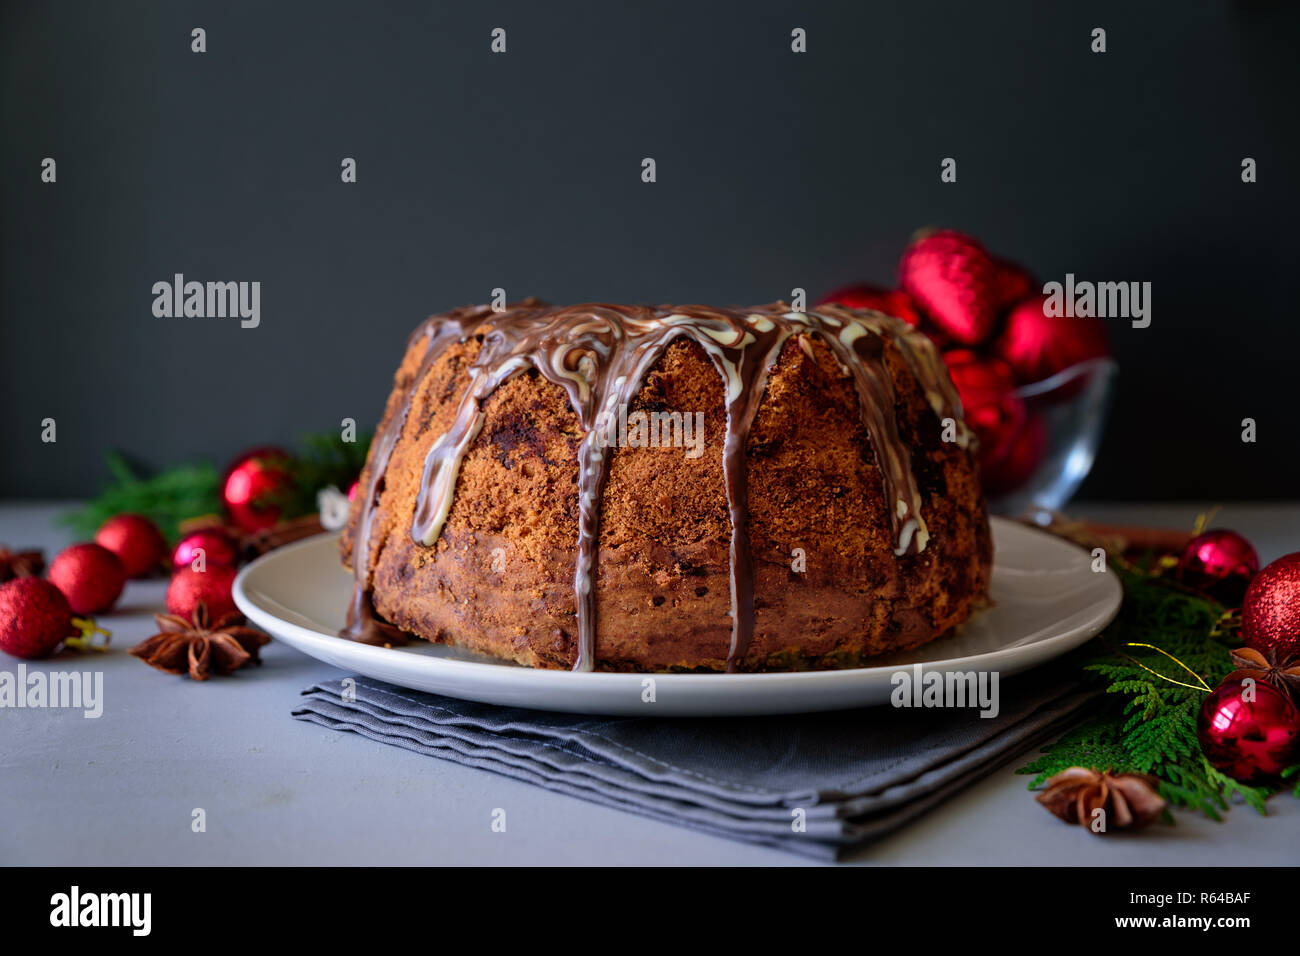 Christmas cake with chocolate icing on gray wooden background. Holiday decorations concept. Top view. Flat lay. Copy space - Stock Image